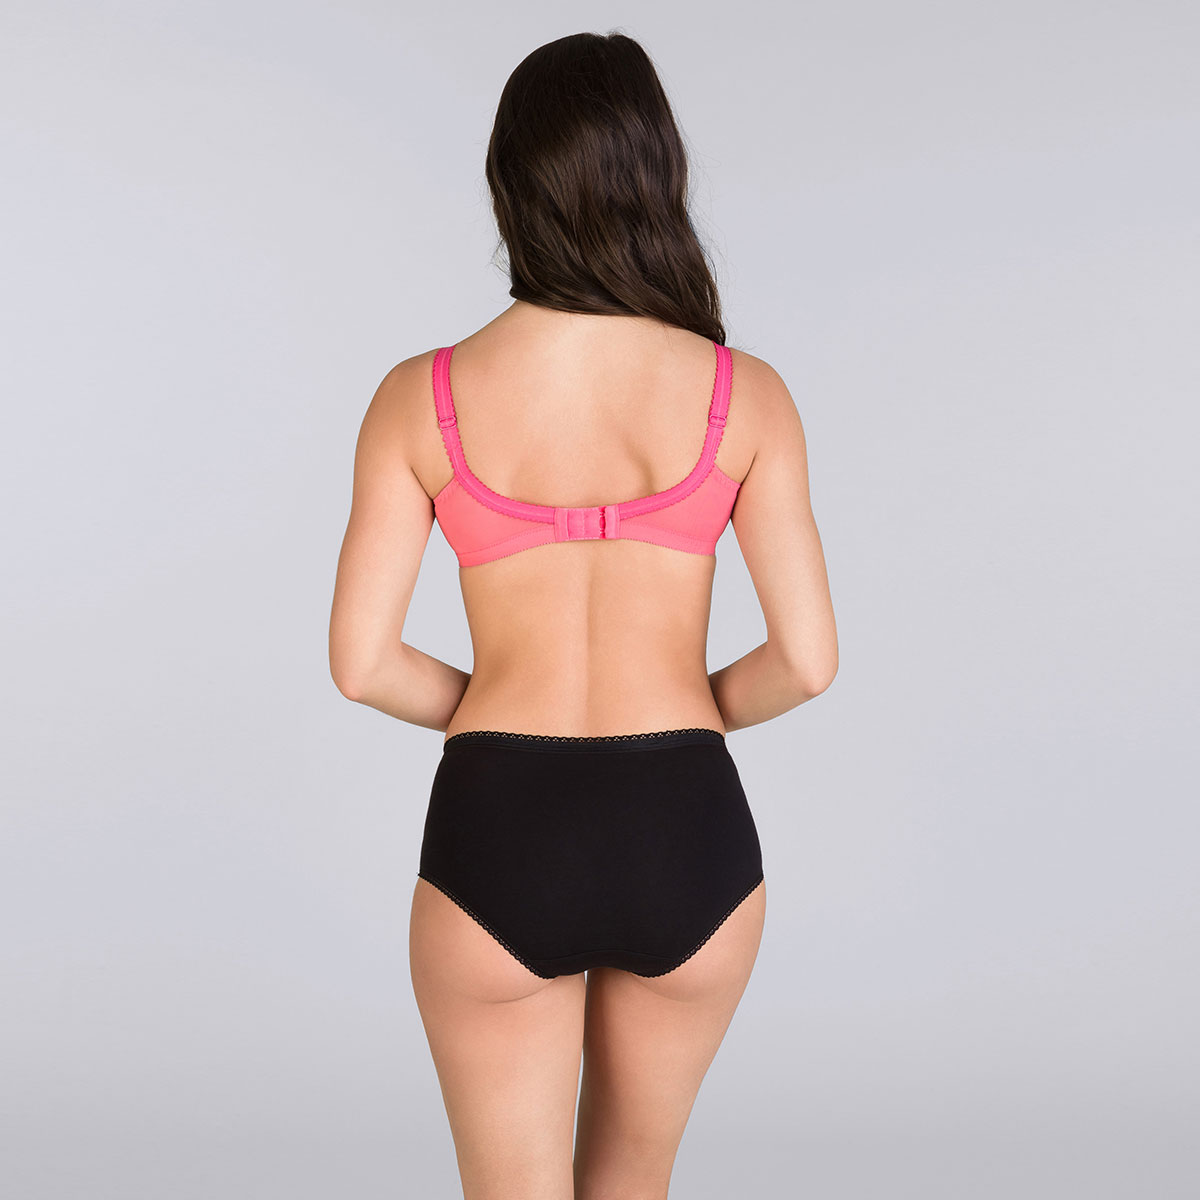 Brilliant pink non-wired bra - Cross your Heart 556-PLAYTEX